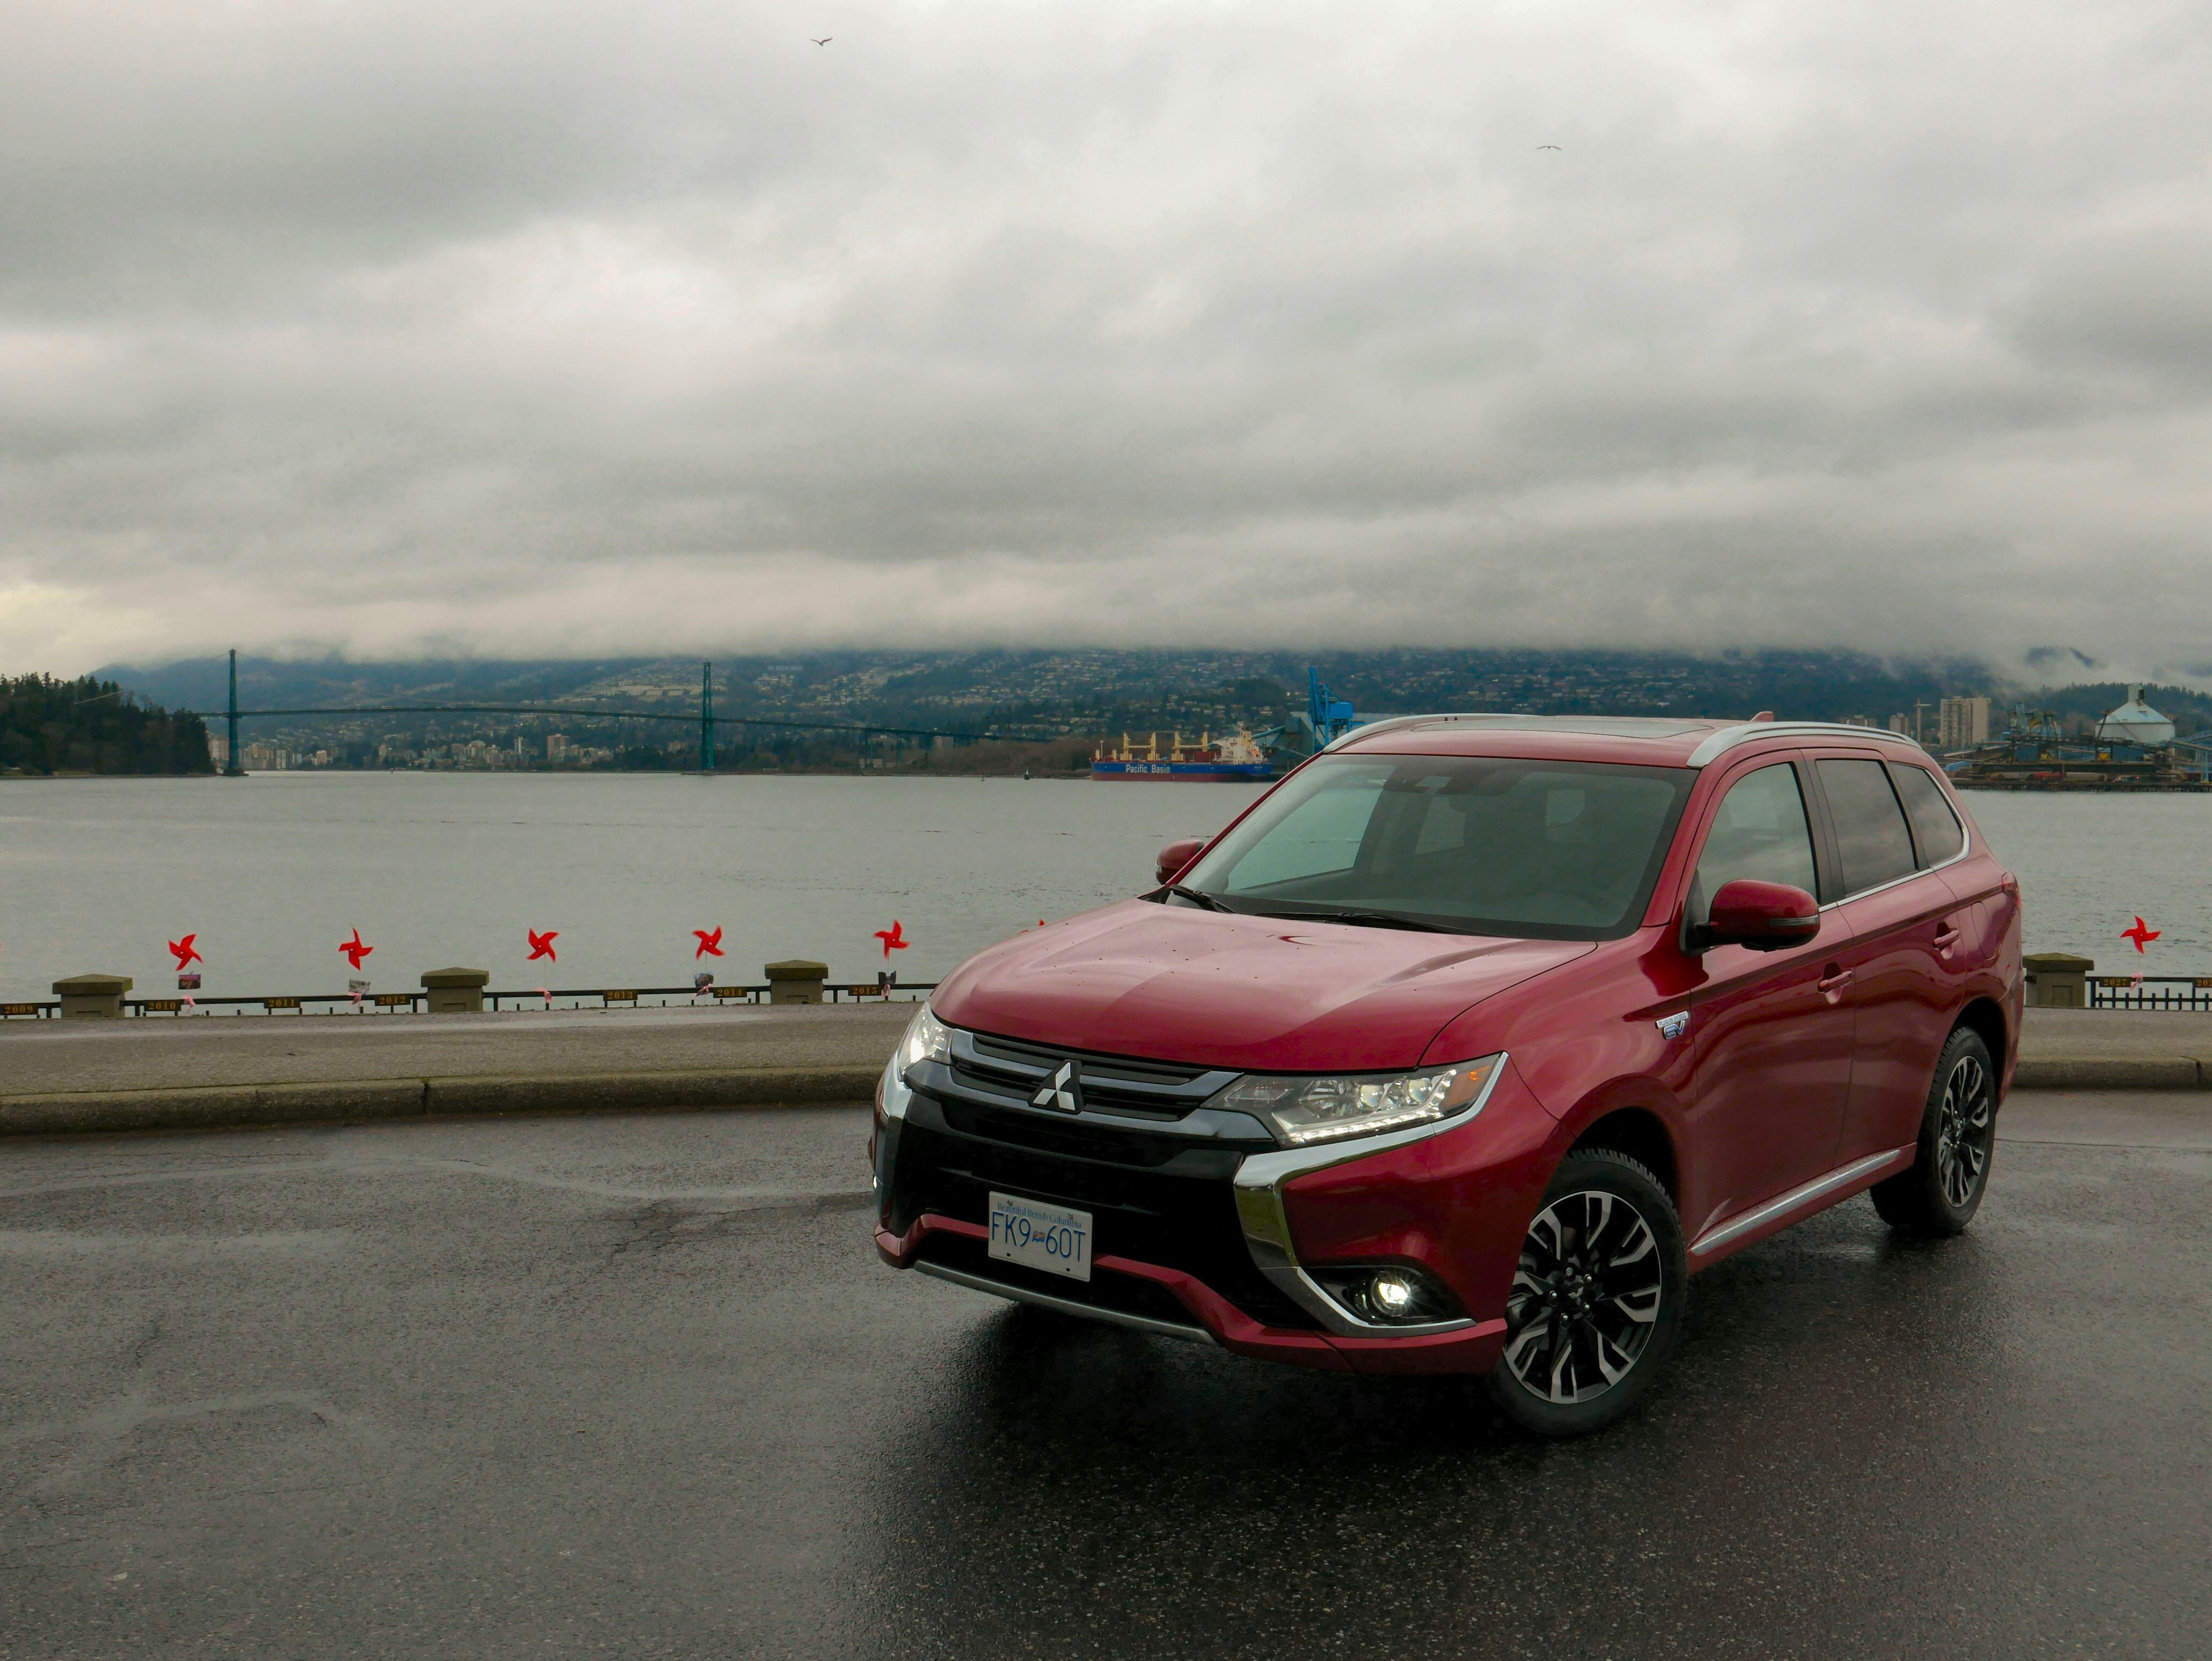 2018 Mitsubishi Outlander PHEV Review and First Drive - AutoGuide com